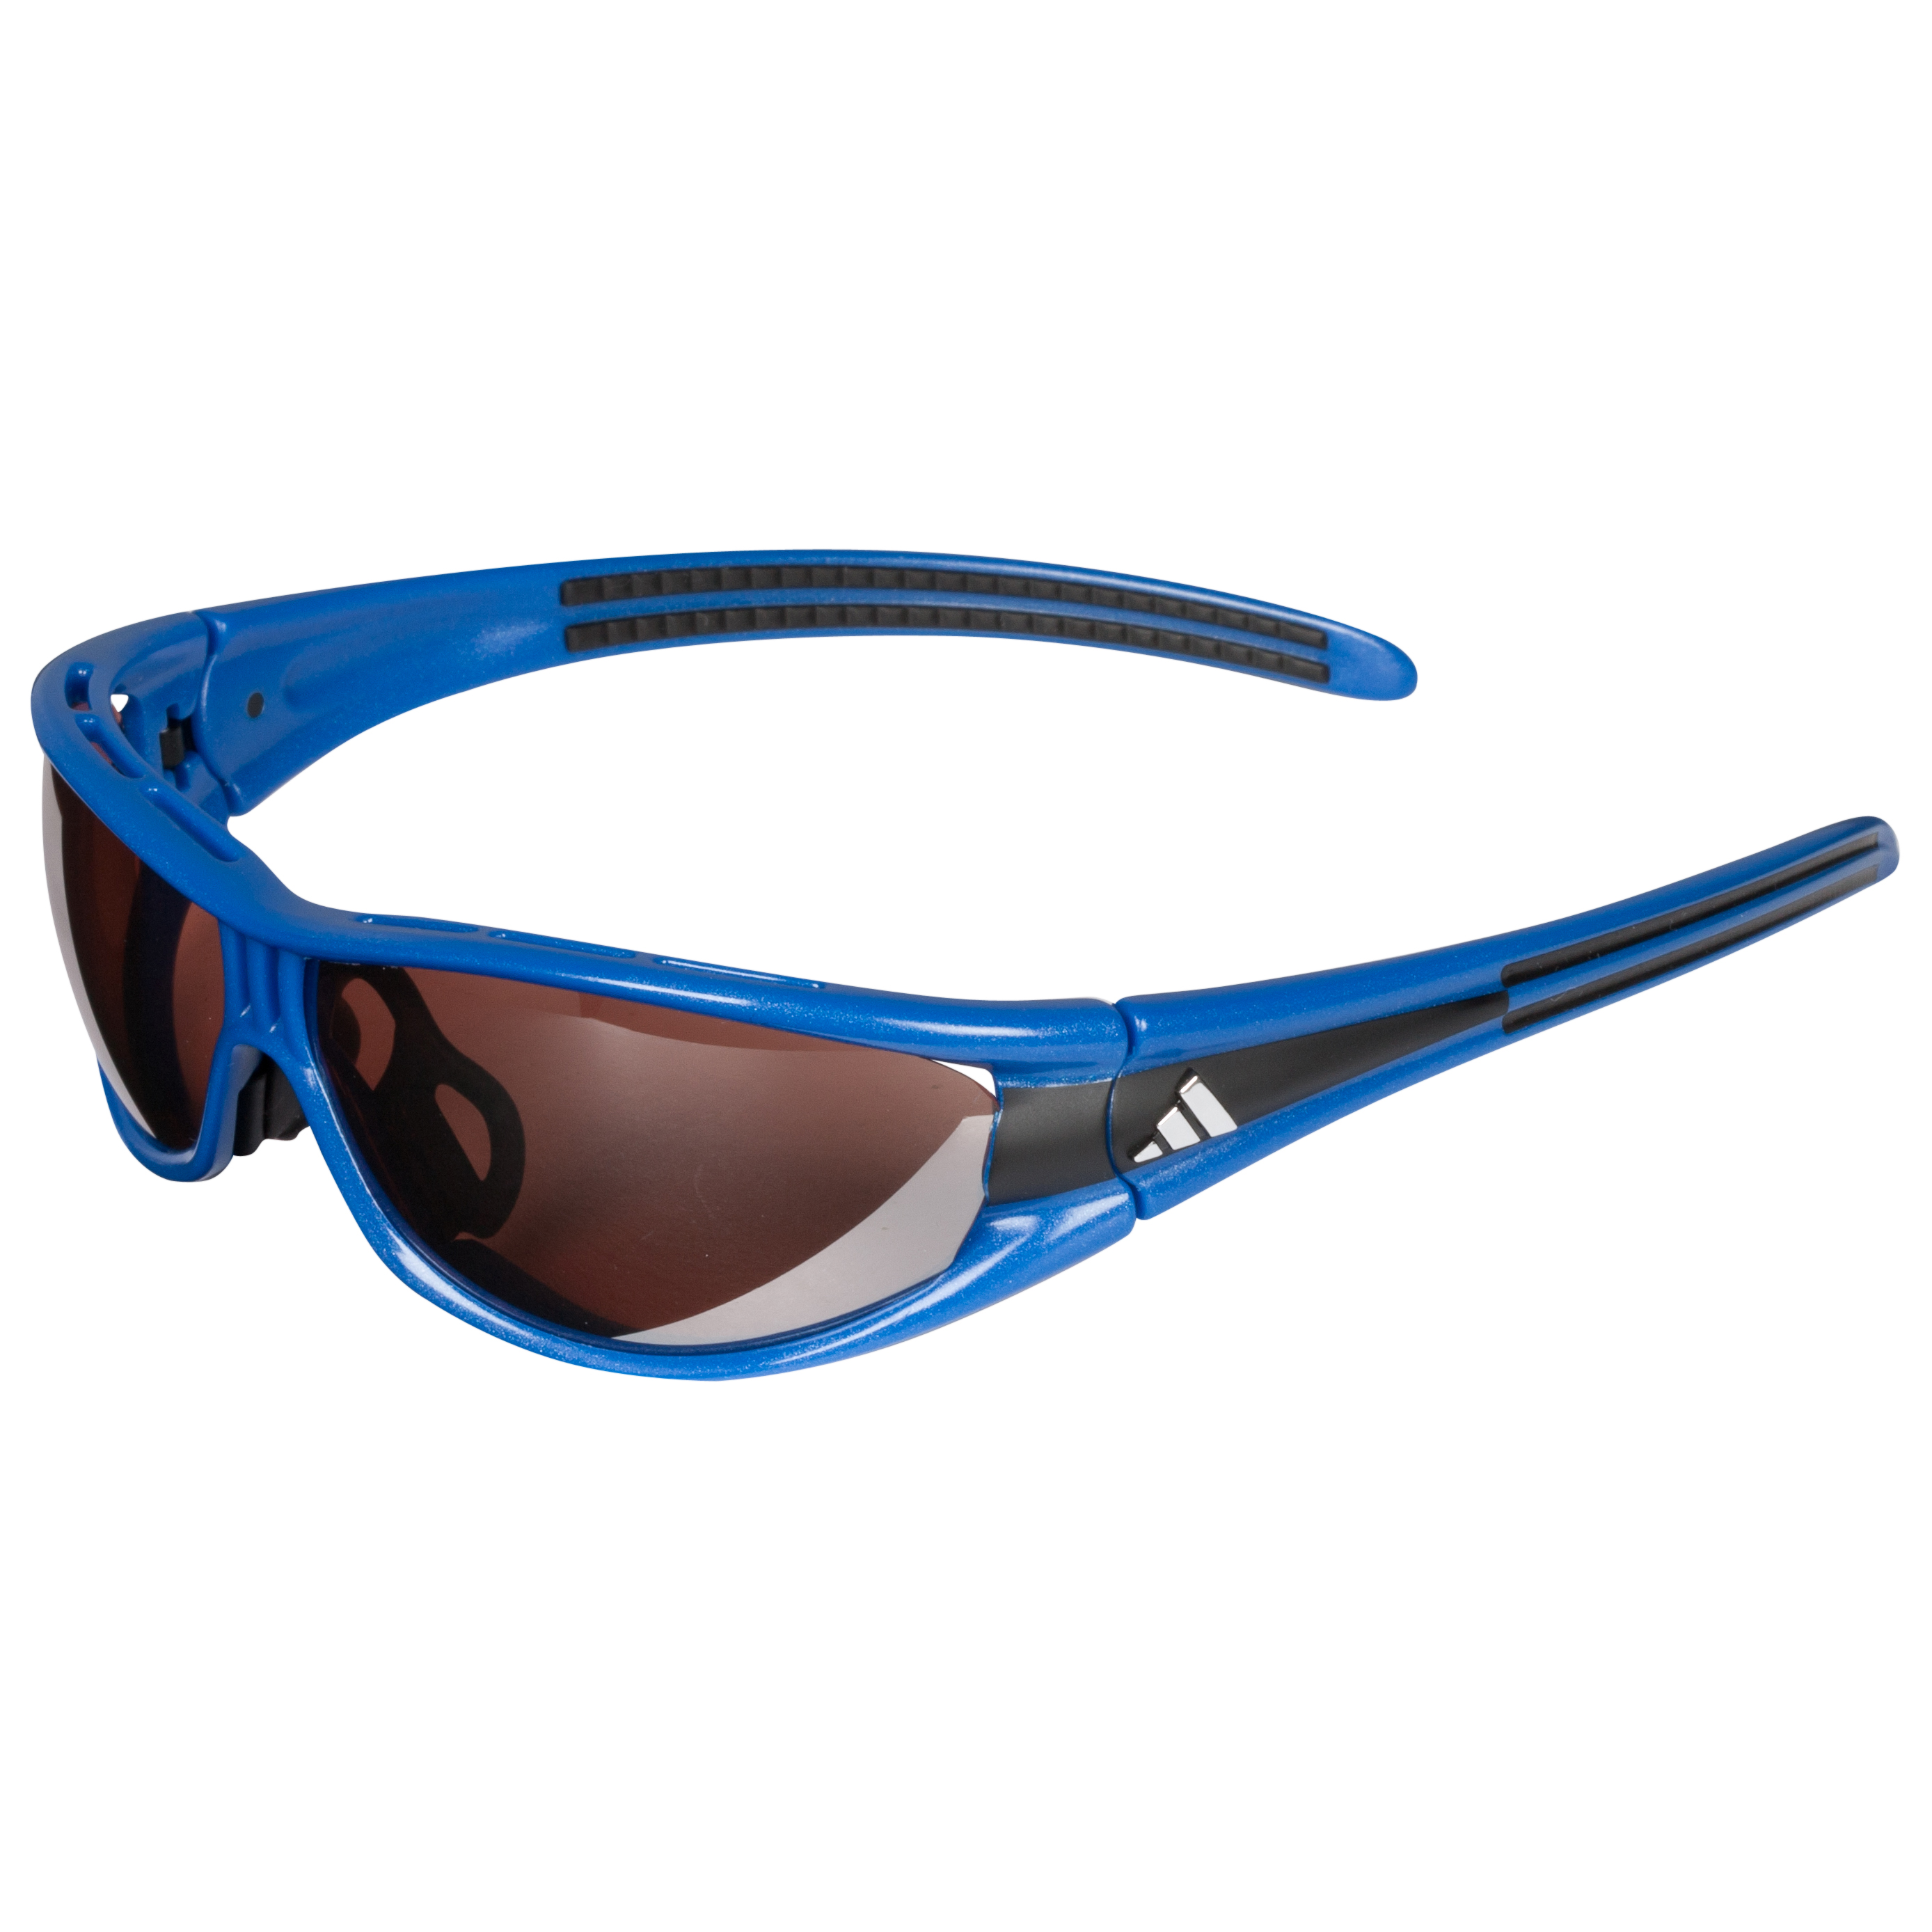 Adidas Evil Eye Sunglasses - Blue